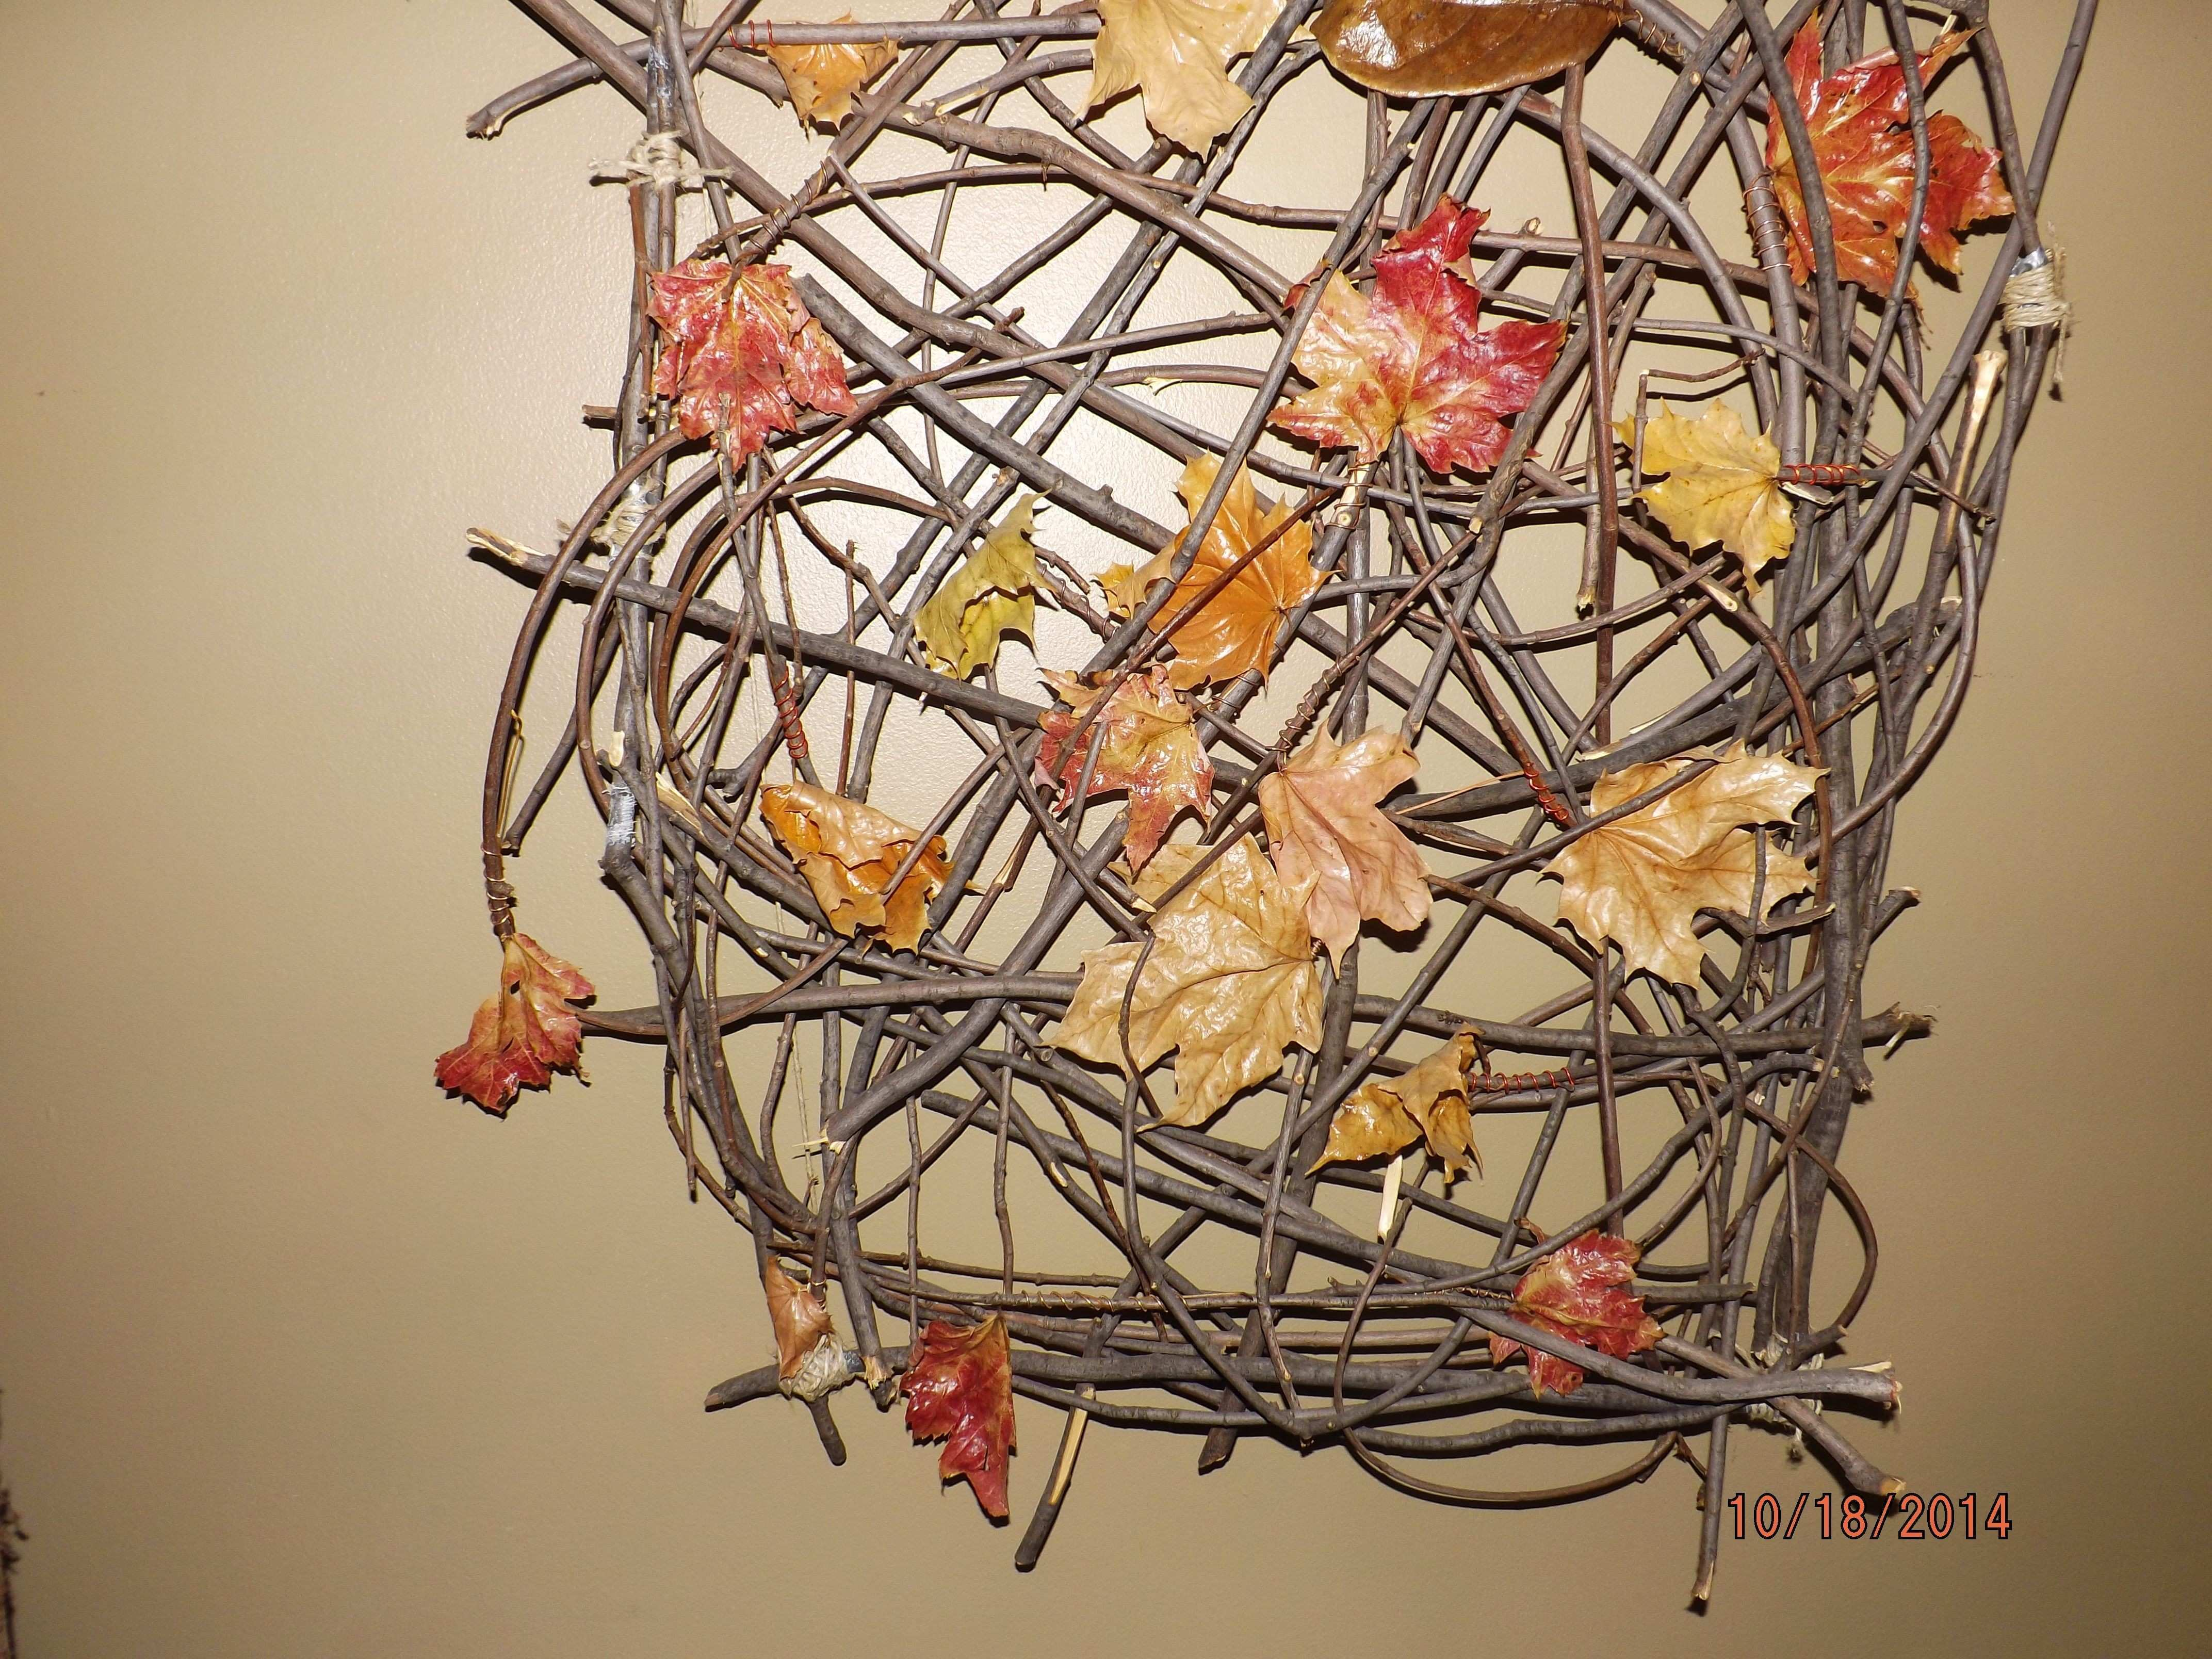 Tree Branch Art Beautiful Fall Wall Art Made From Fall Leaves and Twigs From A Downed Tree